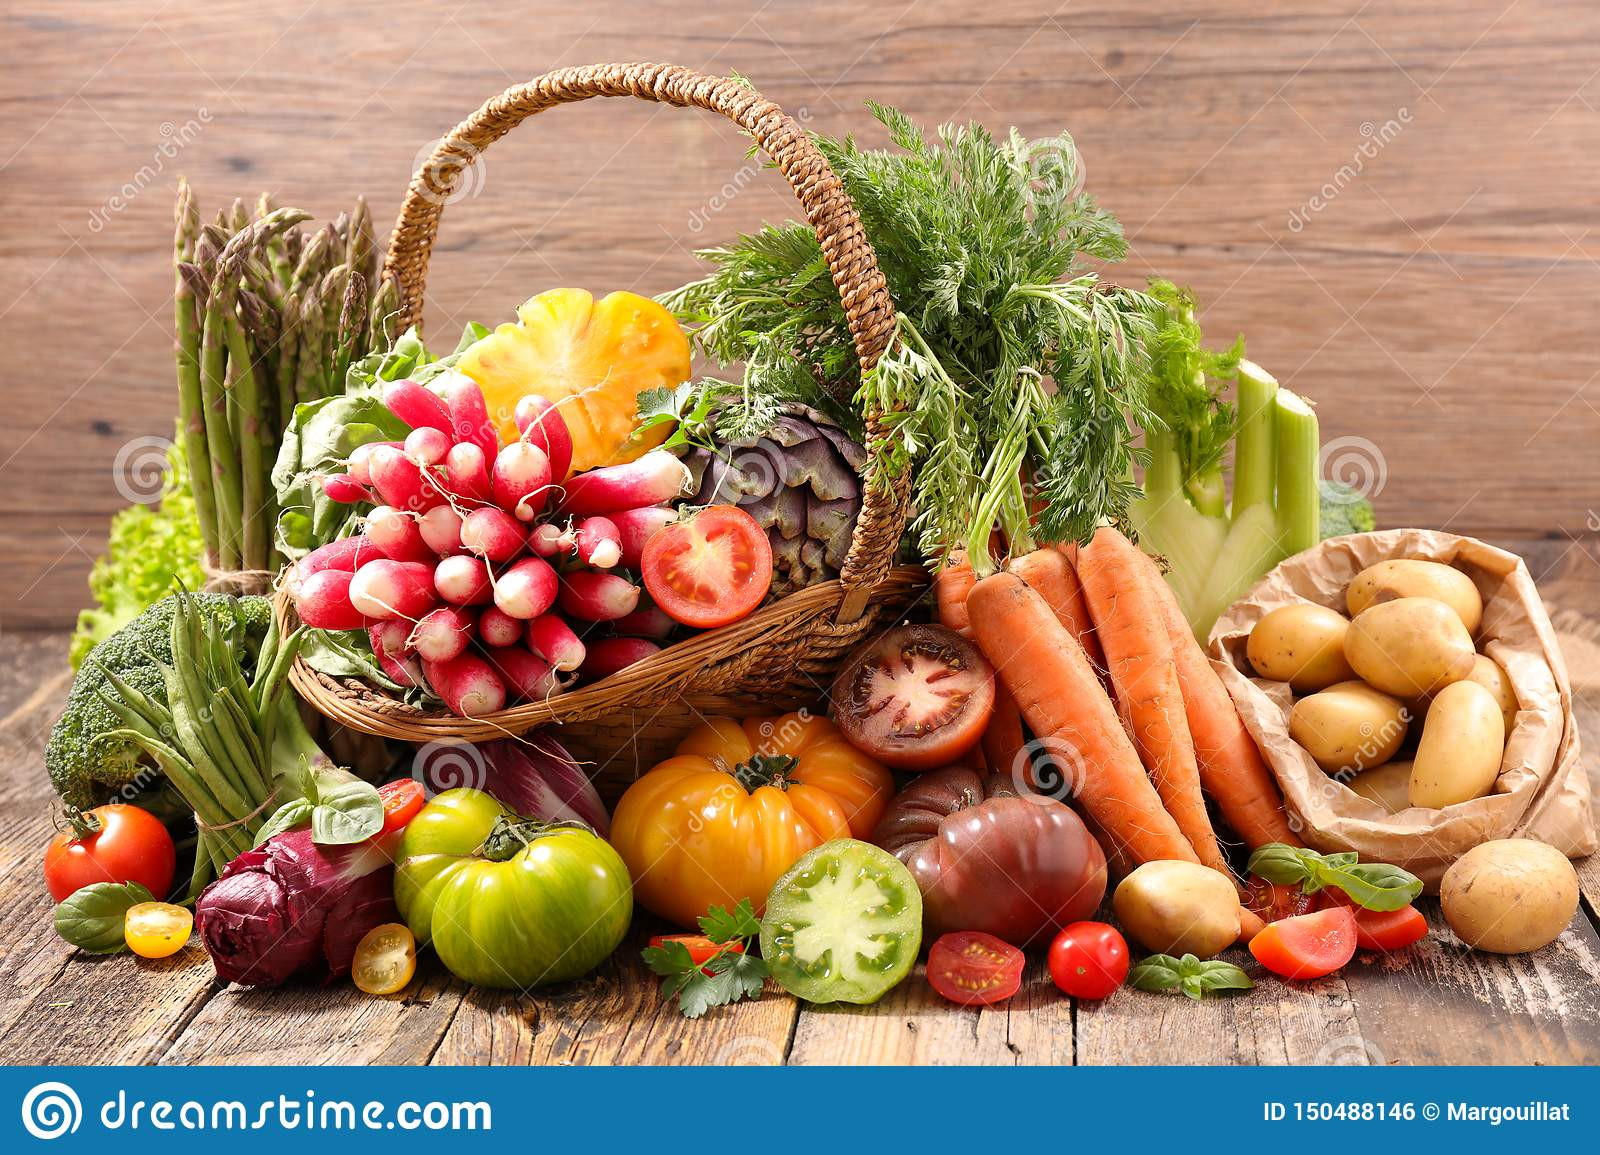 Selection Of Fruit And Vegetable Stock Photo - Image of ...